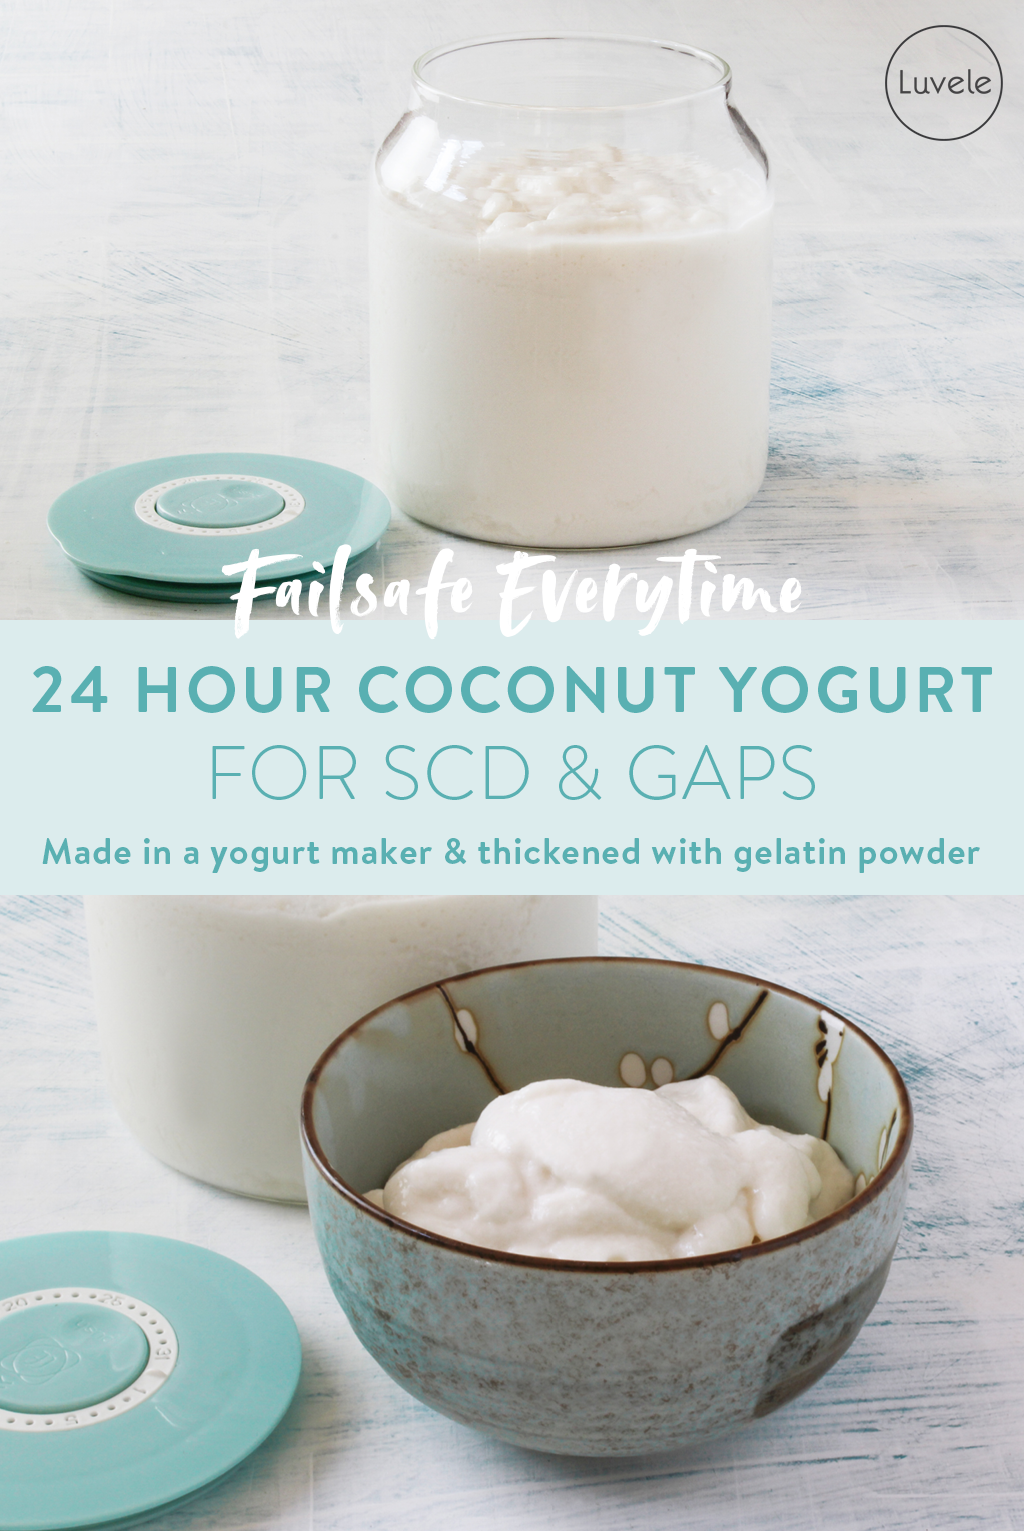 Coconut yogurt recipe for GAPS and SCD diet